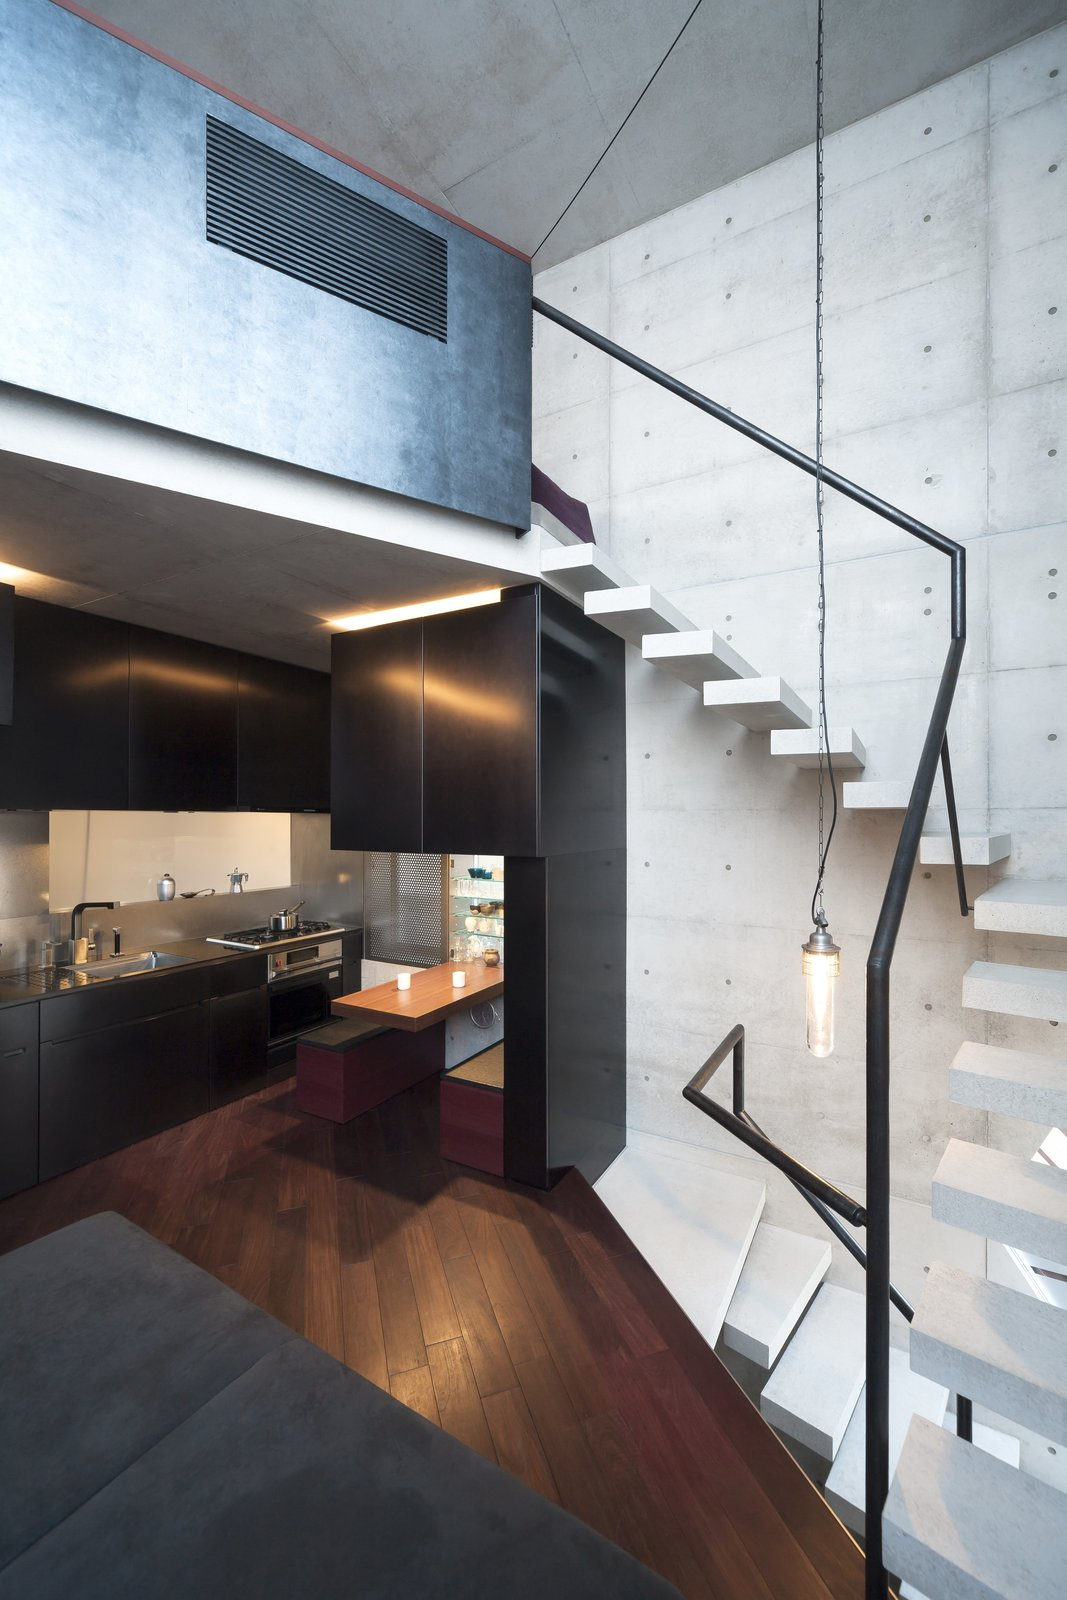 Staircase, Metal Railing, and Concrete Tread  Photo 6 of 16 in A Concrete Micro-House in Japan Works All the Angles